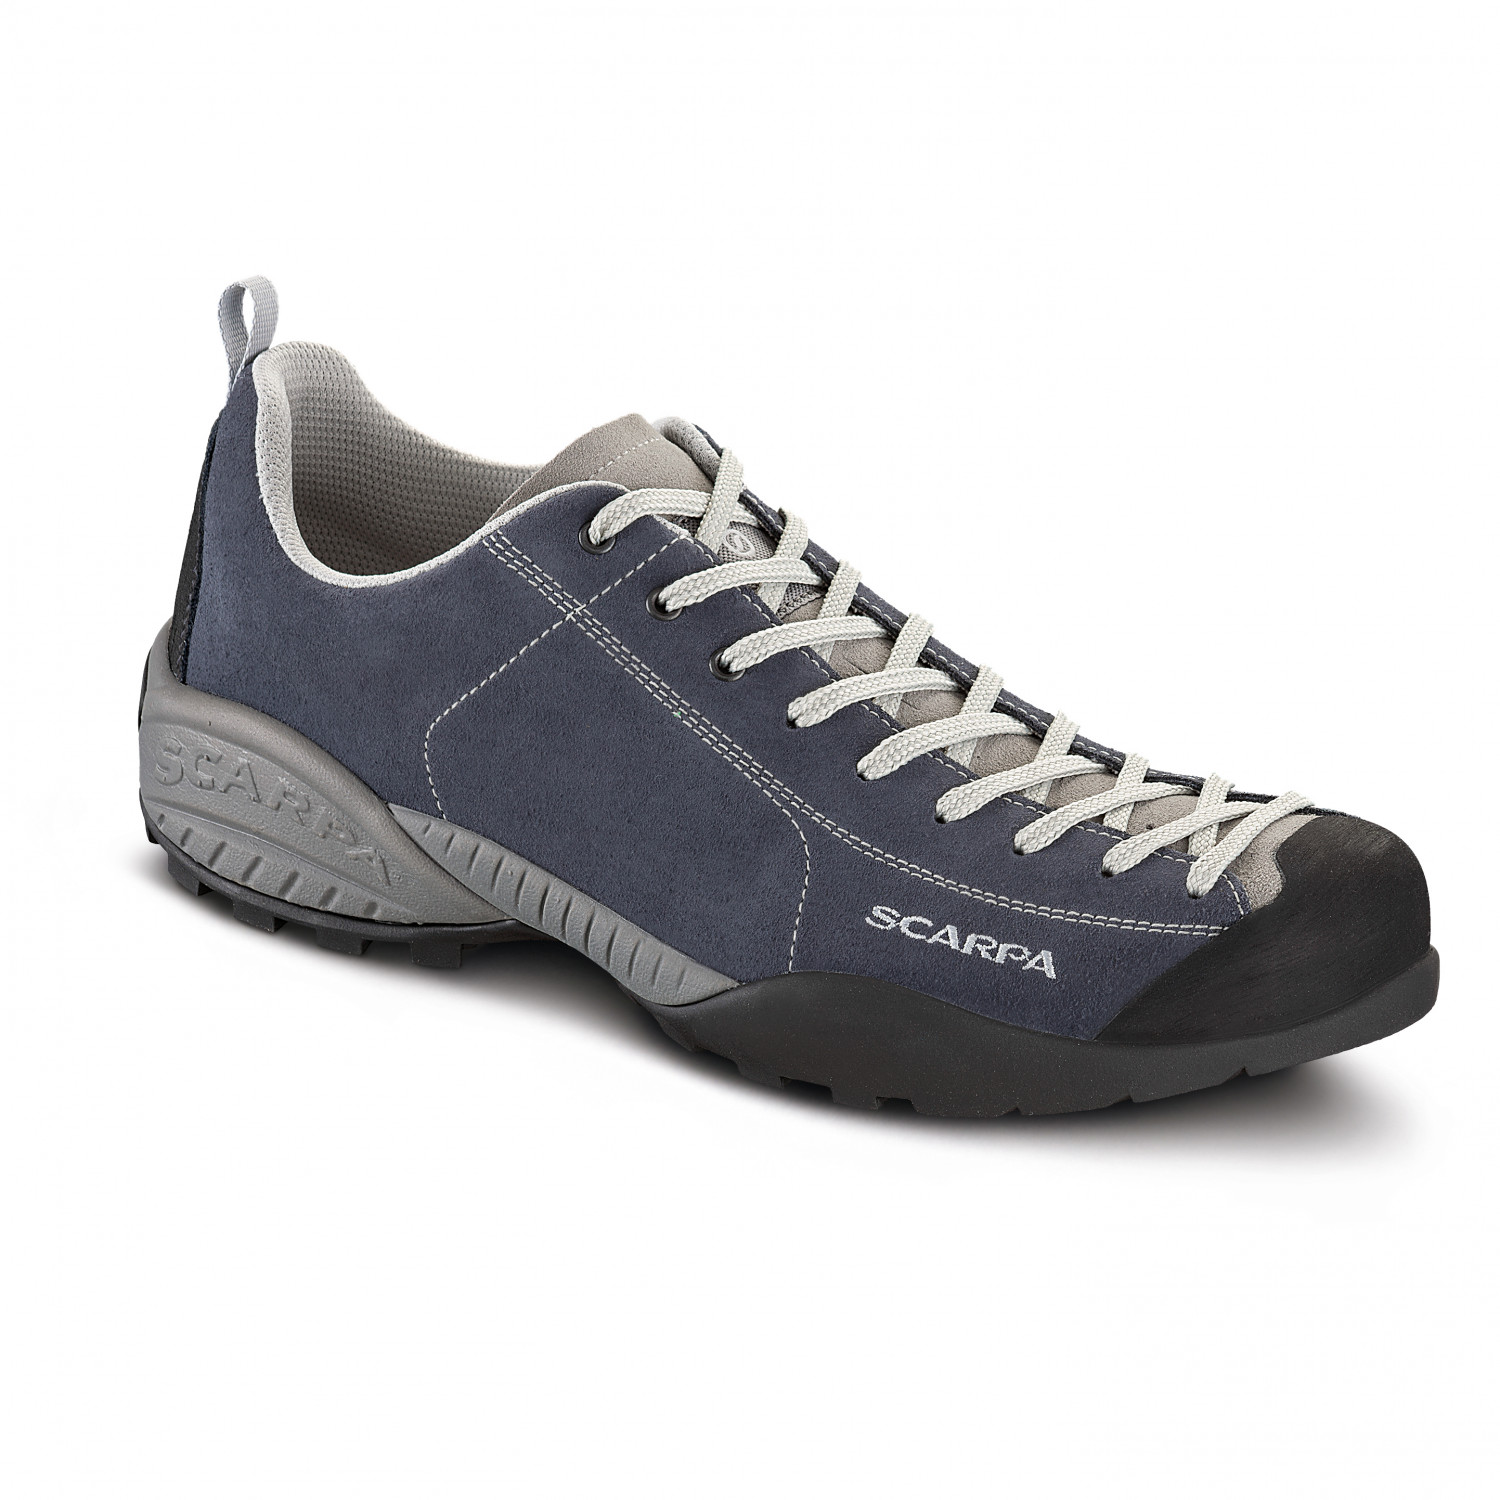 Mojito Approachschuhe Dress Blue Scarpa tnxOX